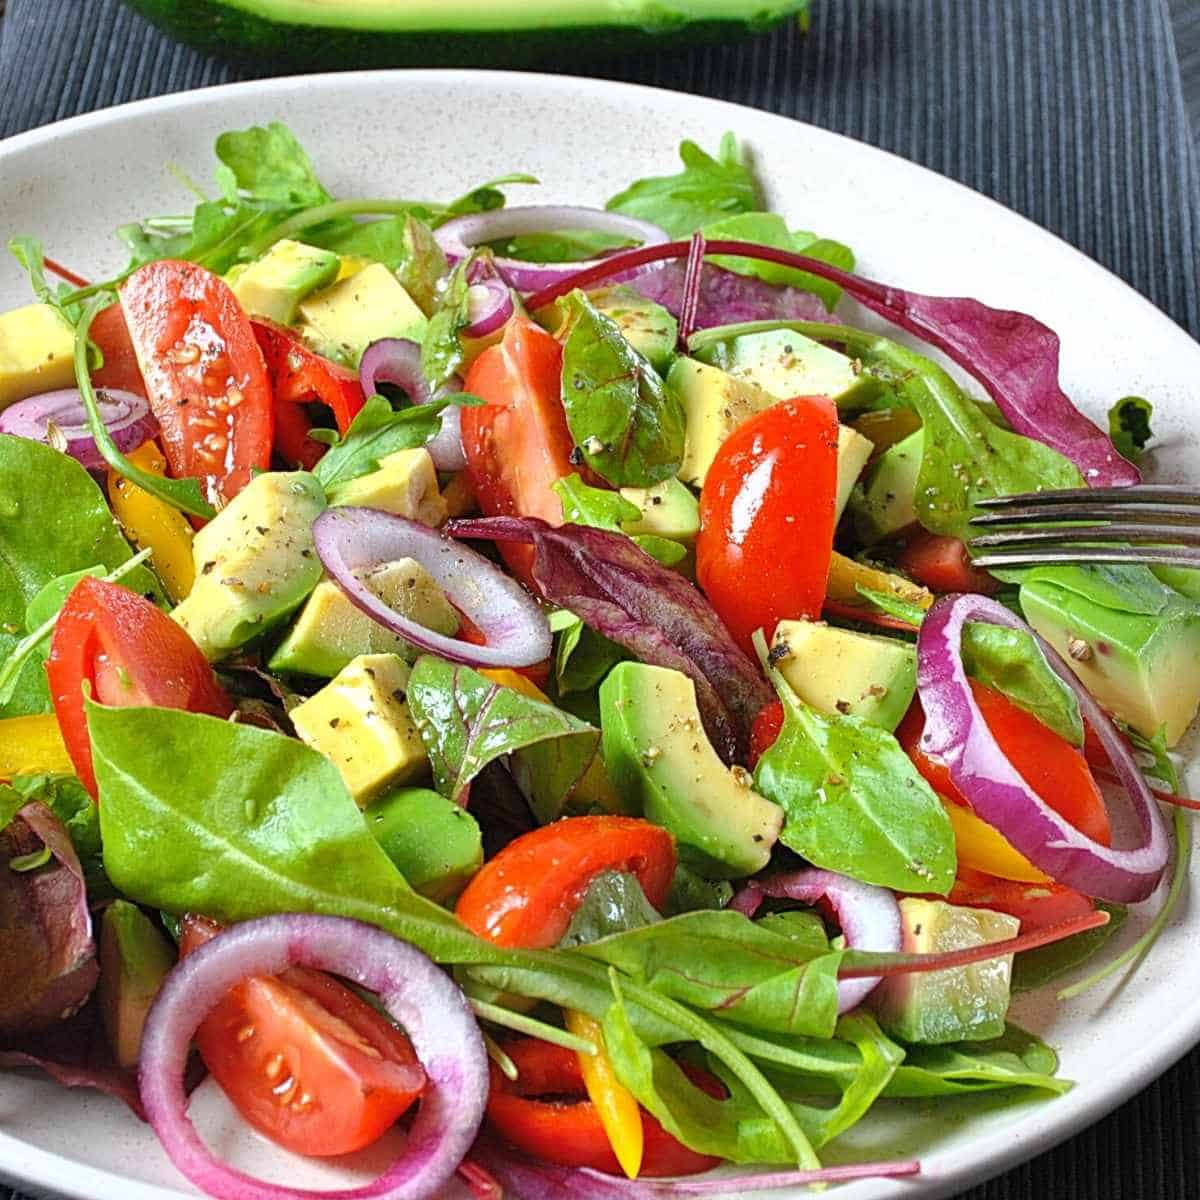 spinach avocado salad - How to Fix Whole Body Aches on Keto: Advice from a Nutritionist